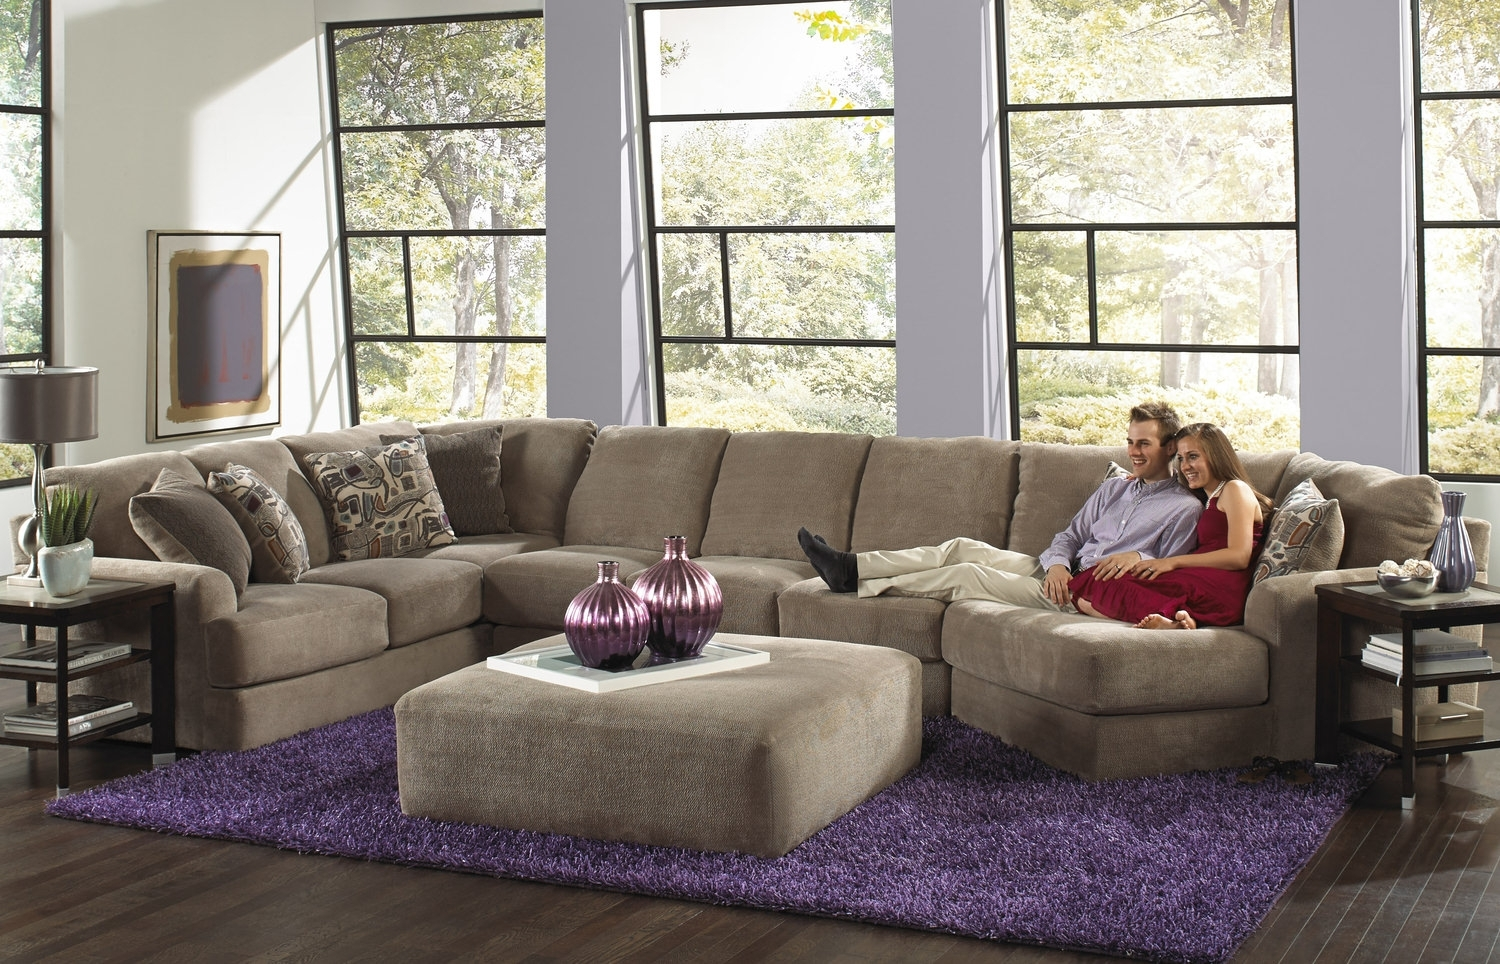 Regal 3 Piece Modular Sectional | Hom Furniture In Haven 3 Piece Sectionals (View 12 of 25)